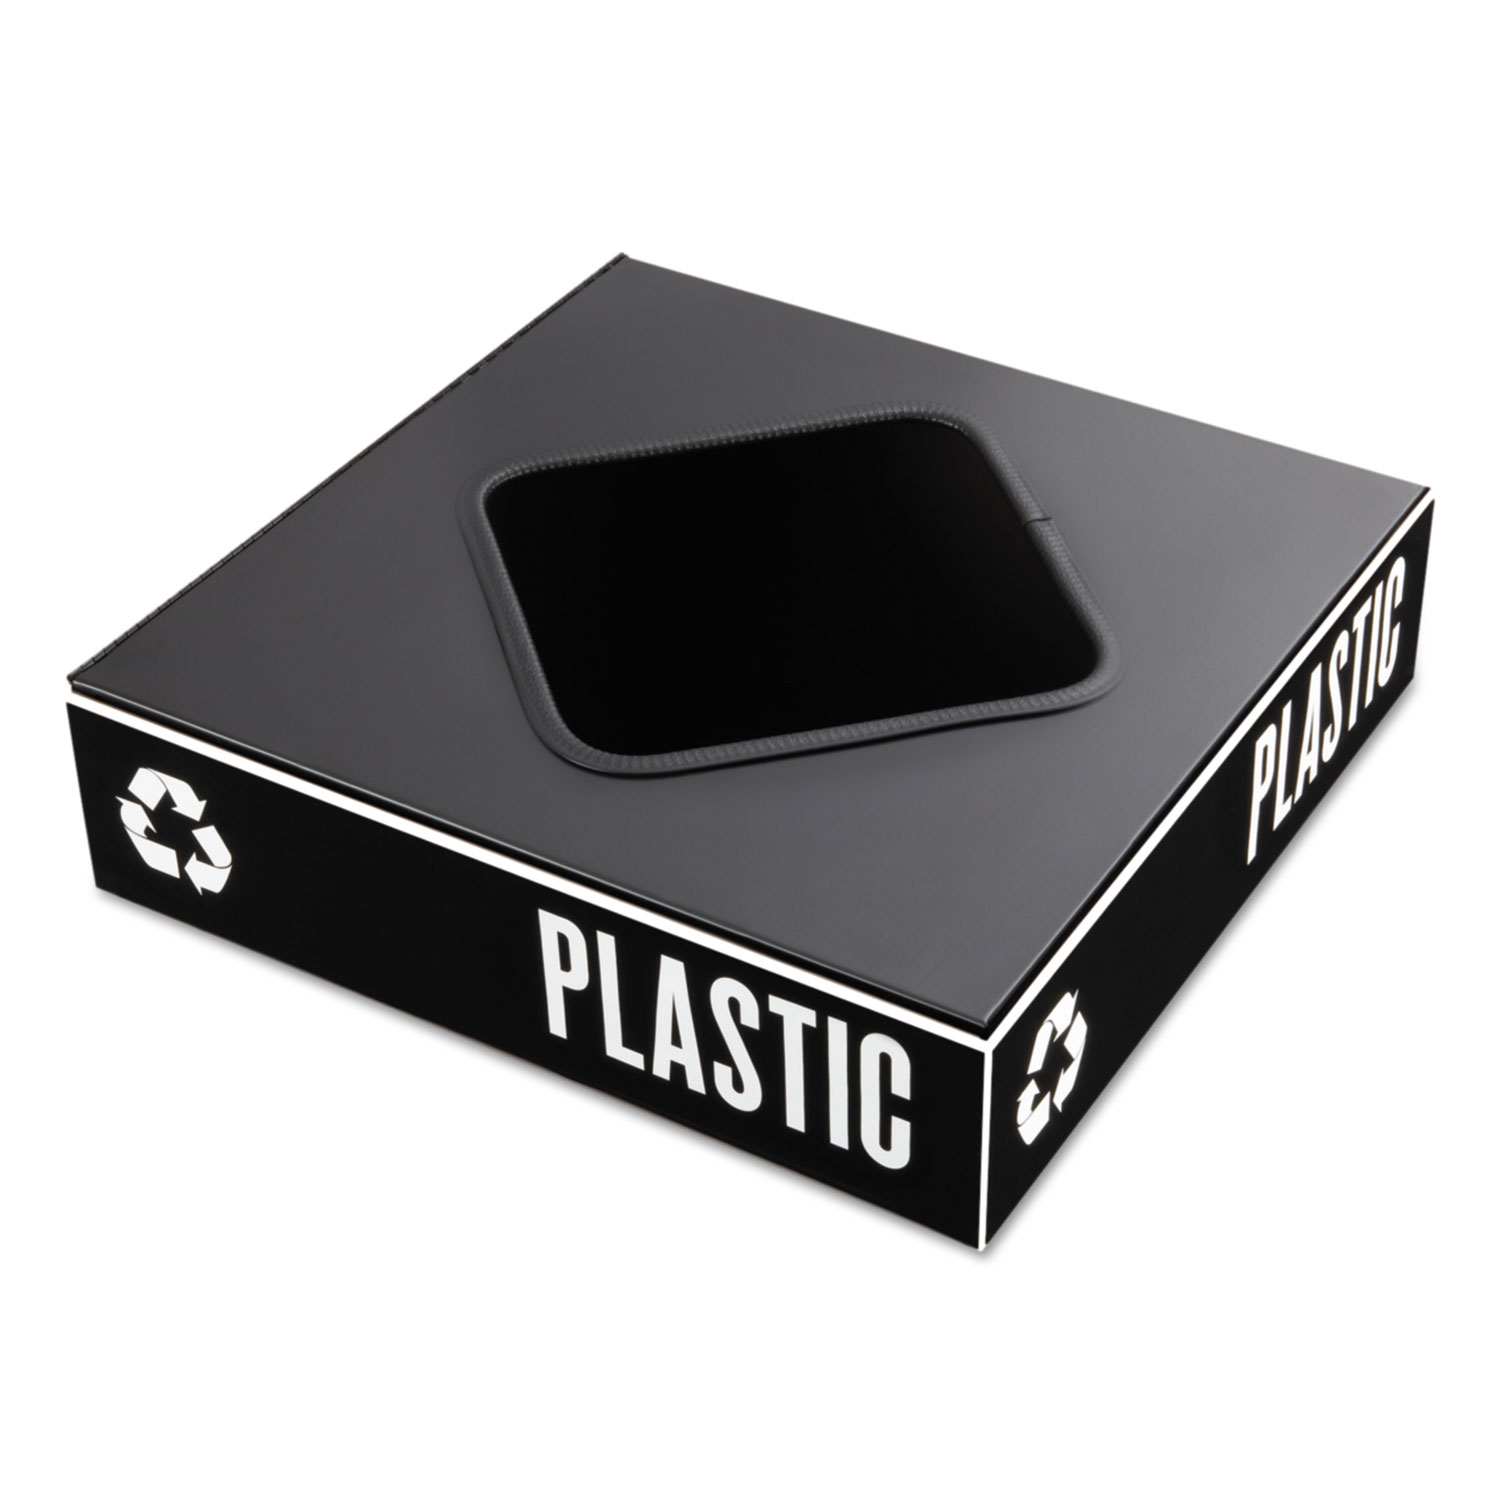 Public Square Recycling Container Lid, Square Opening, 15 25 x 15 25 x 2,  Black